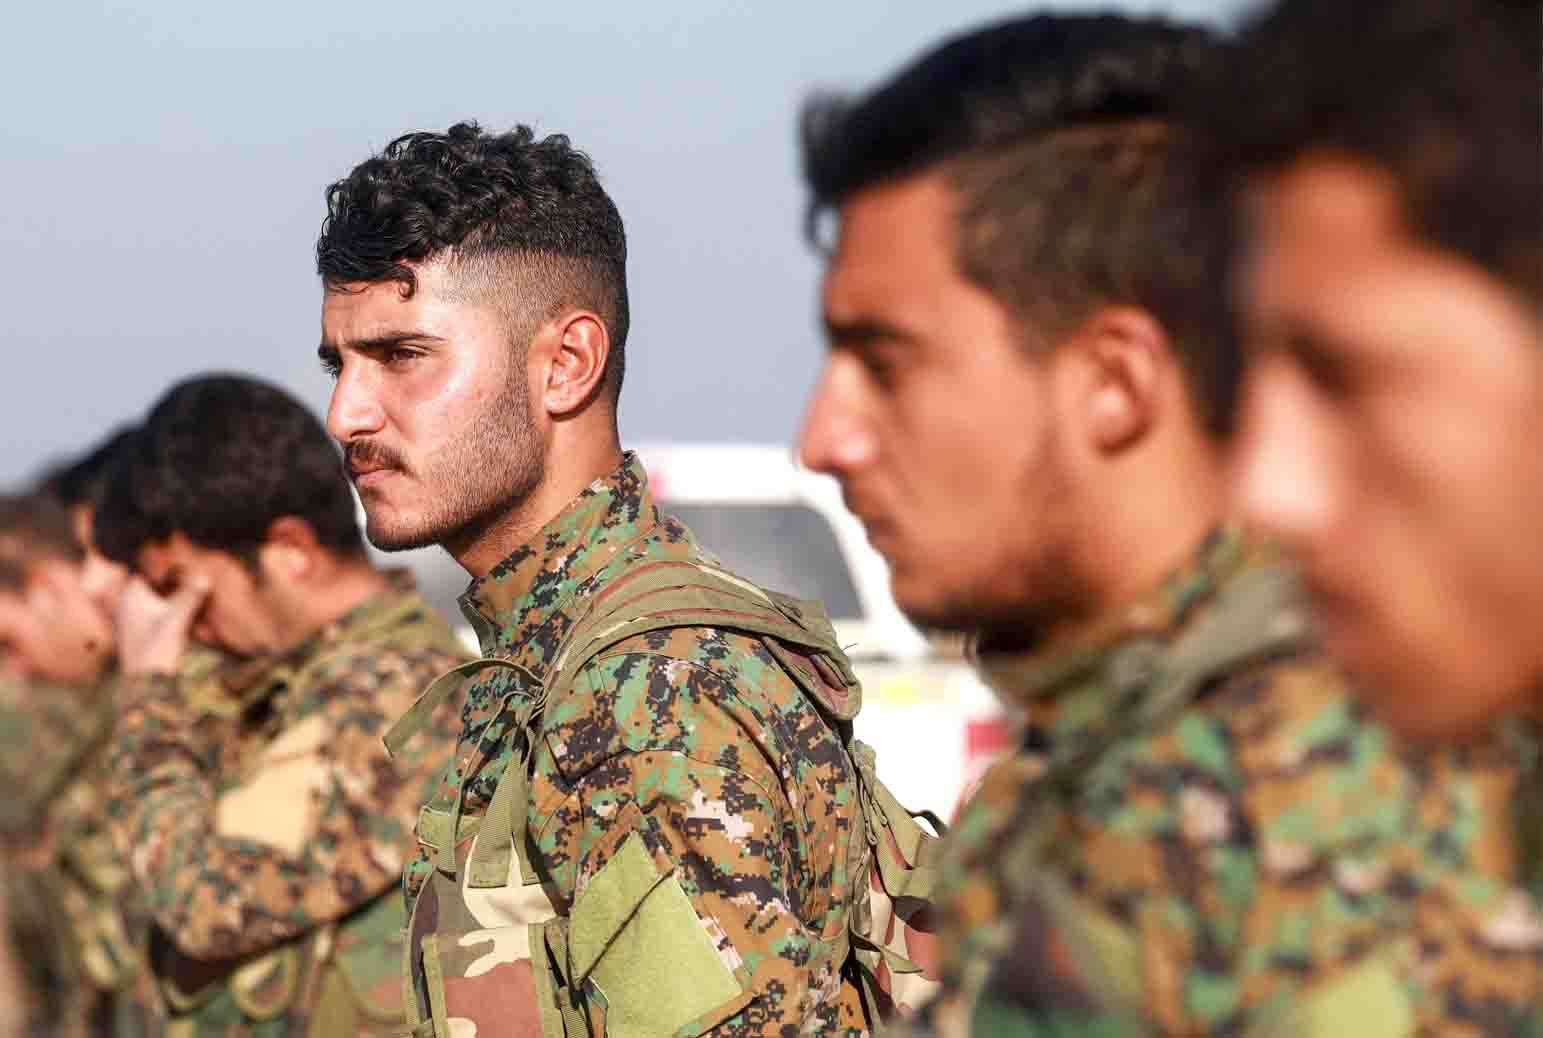 Fighters from the Syrian Democratic Forces (SDF) in the town of Tell Tamr in the countryside of Syria's  north-eastern Hasakah province, last December. (AFP)